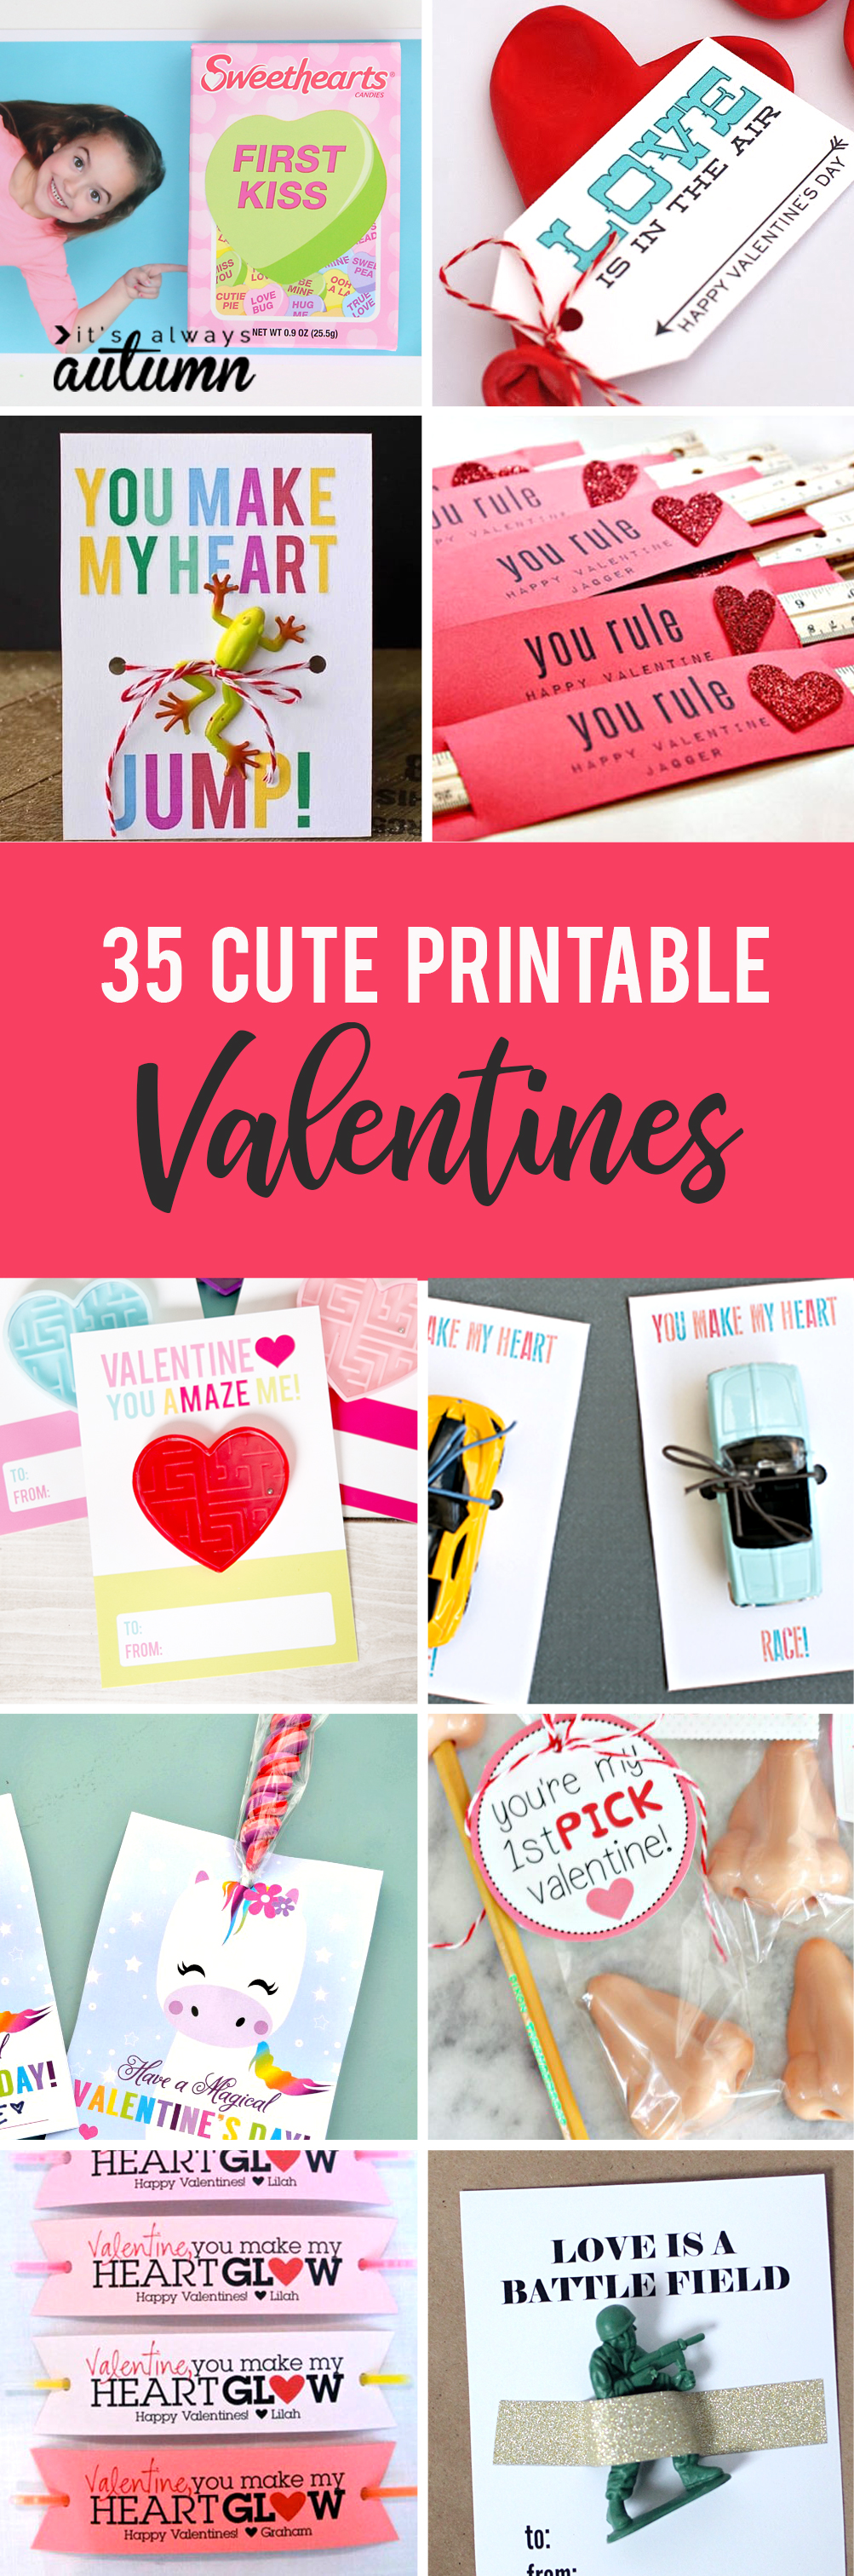 Adorable DIY Valentineu0027s Cards! Free Printable Valentines Make It Easy To  Get Classroom Cards Ready